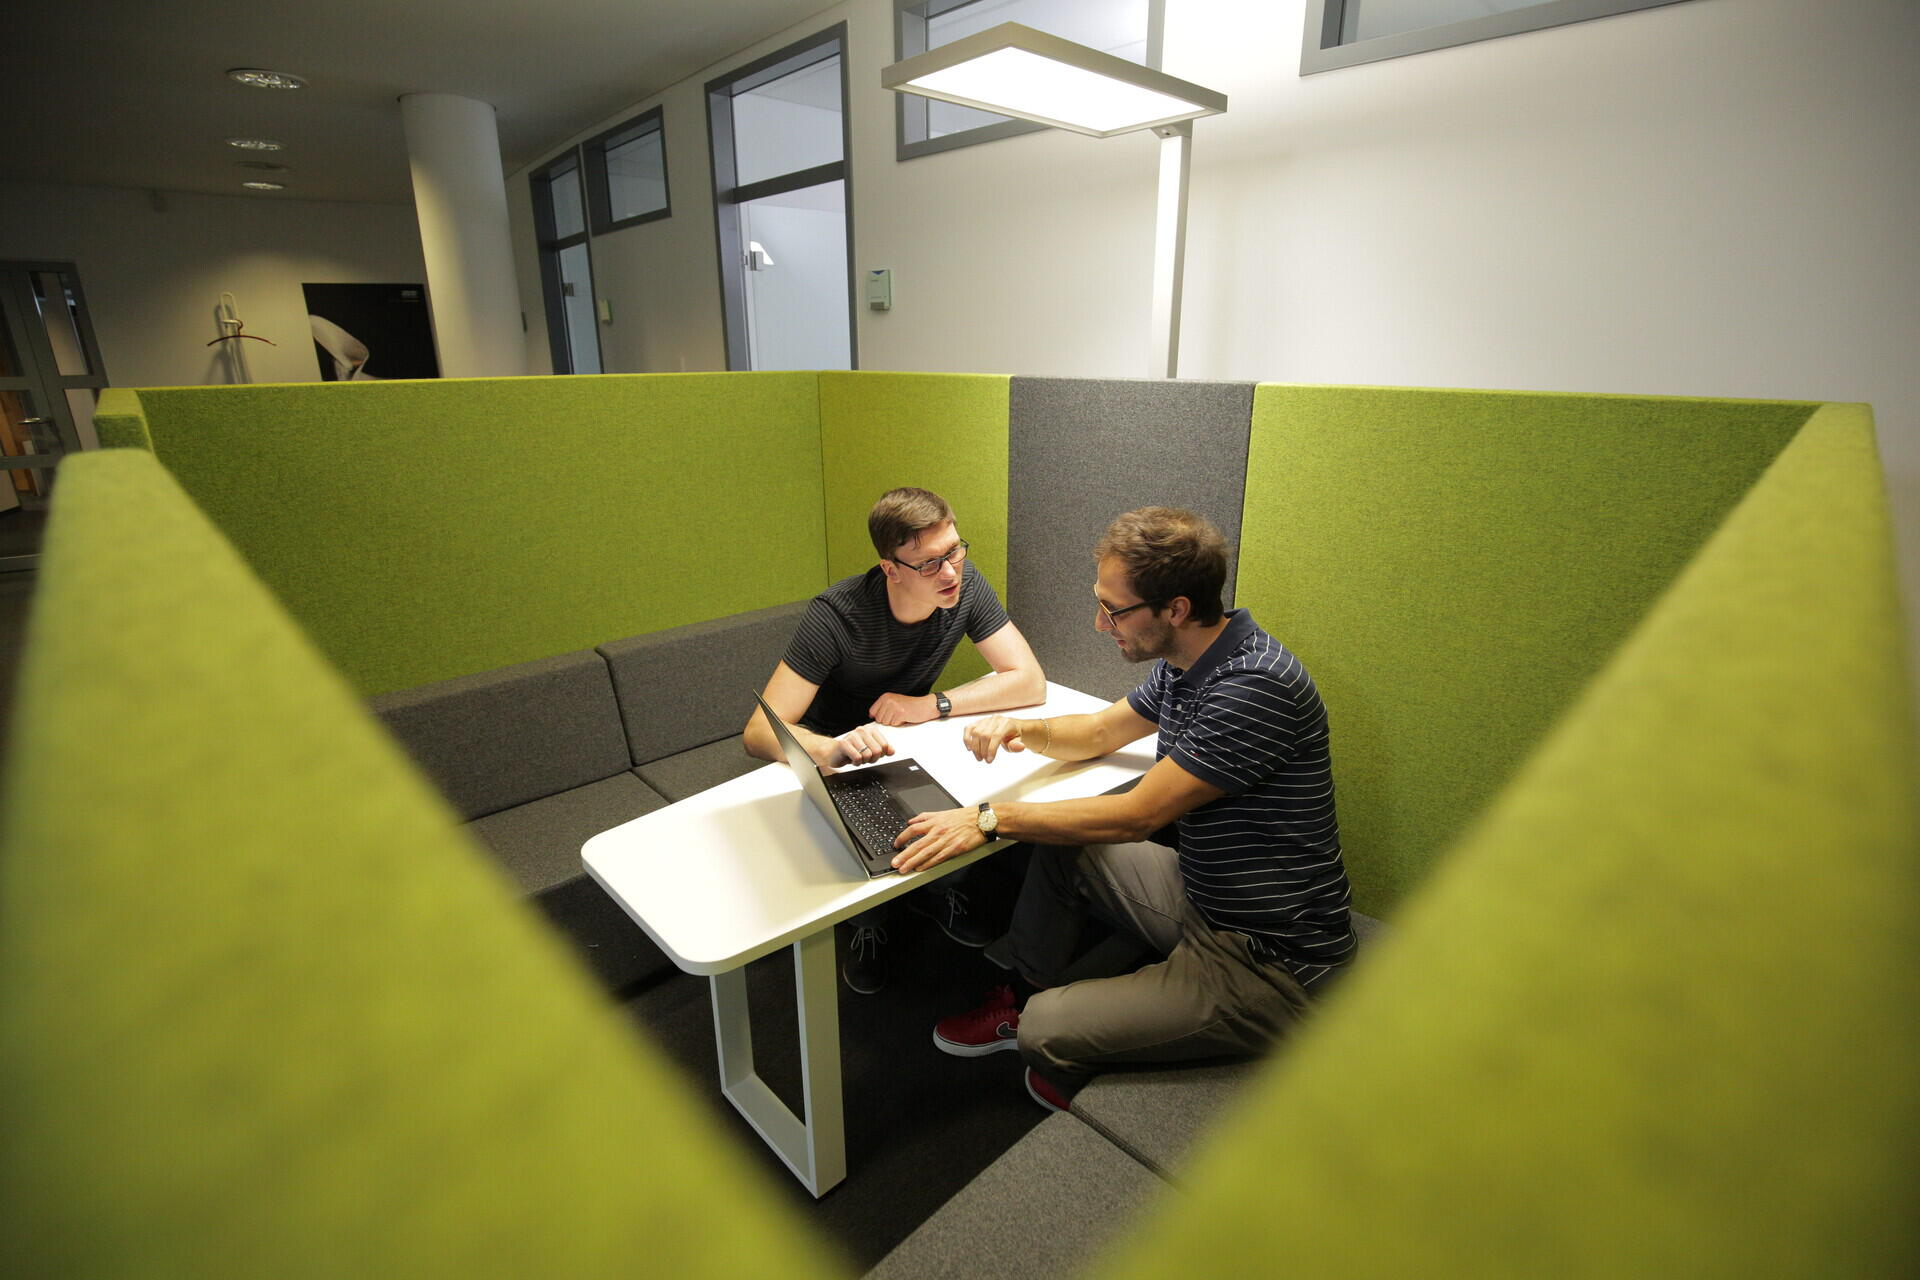 One-on-one meetings between software developers